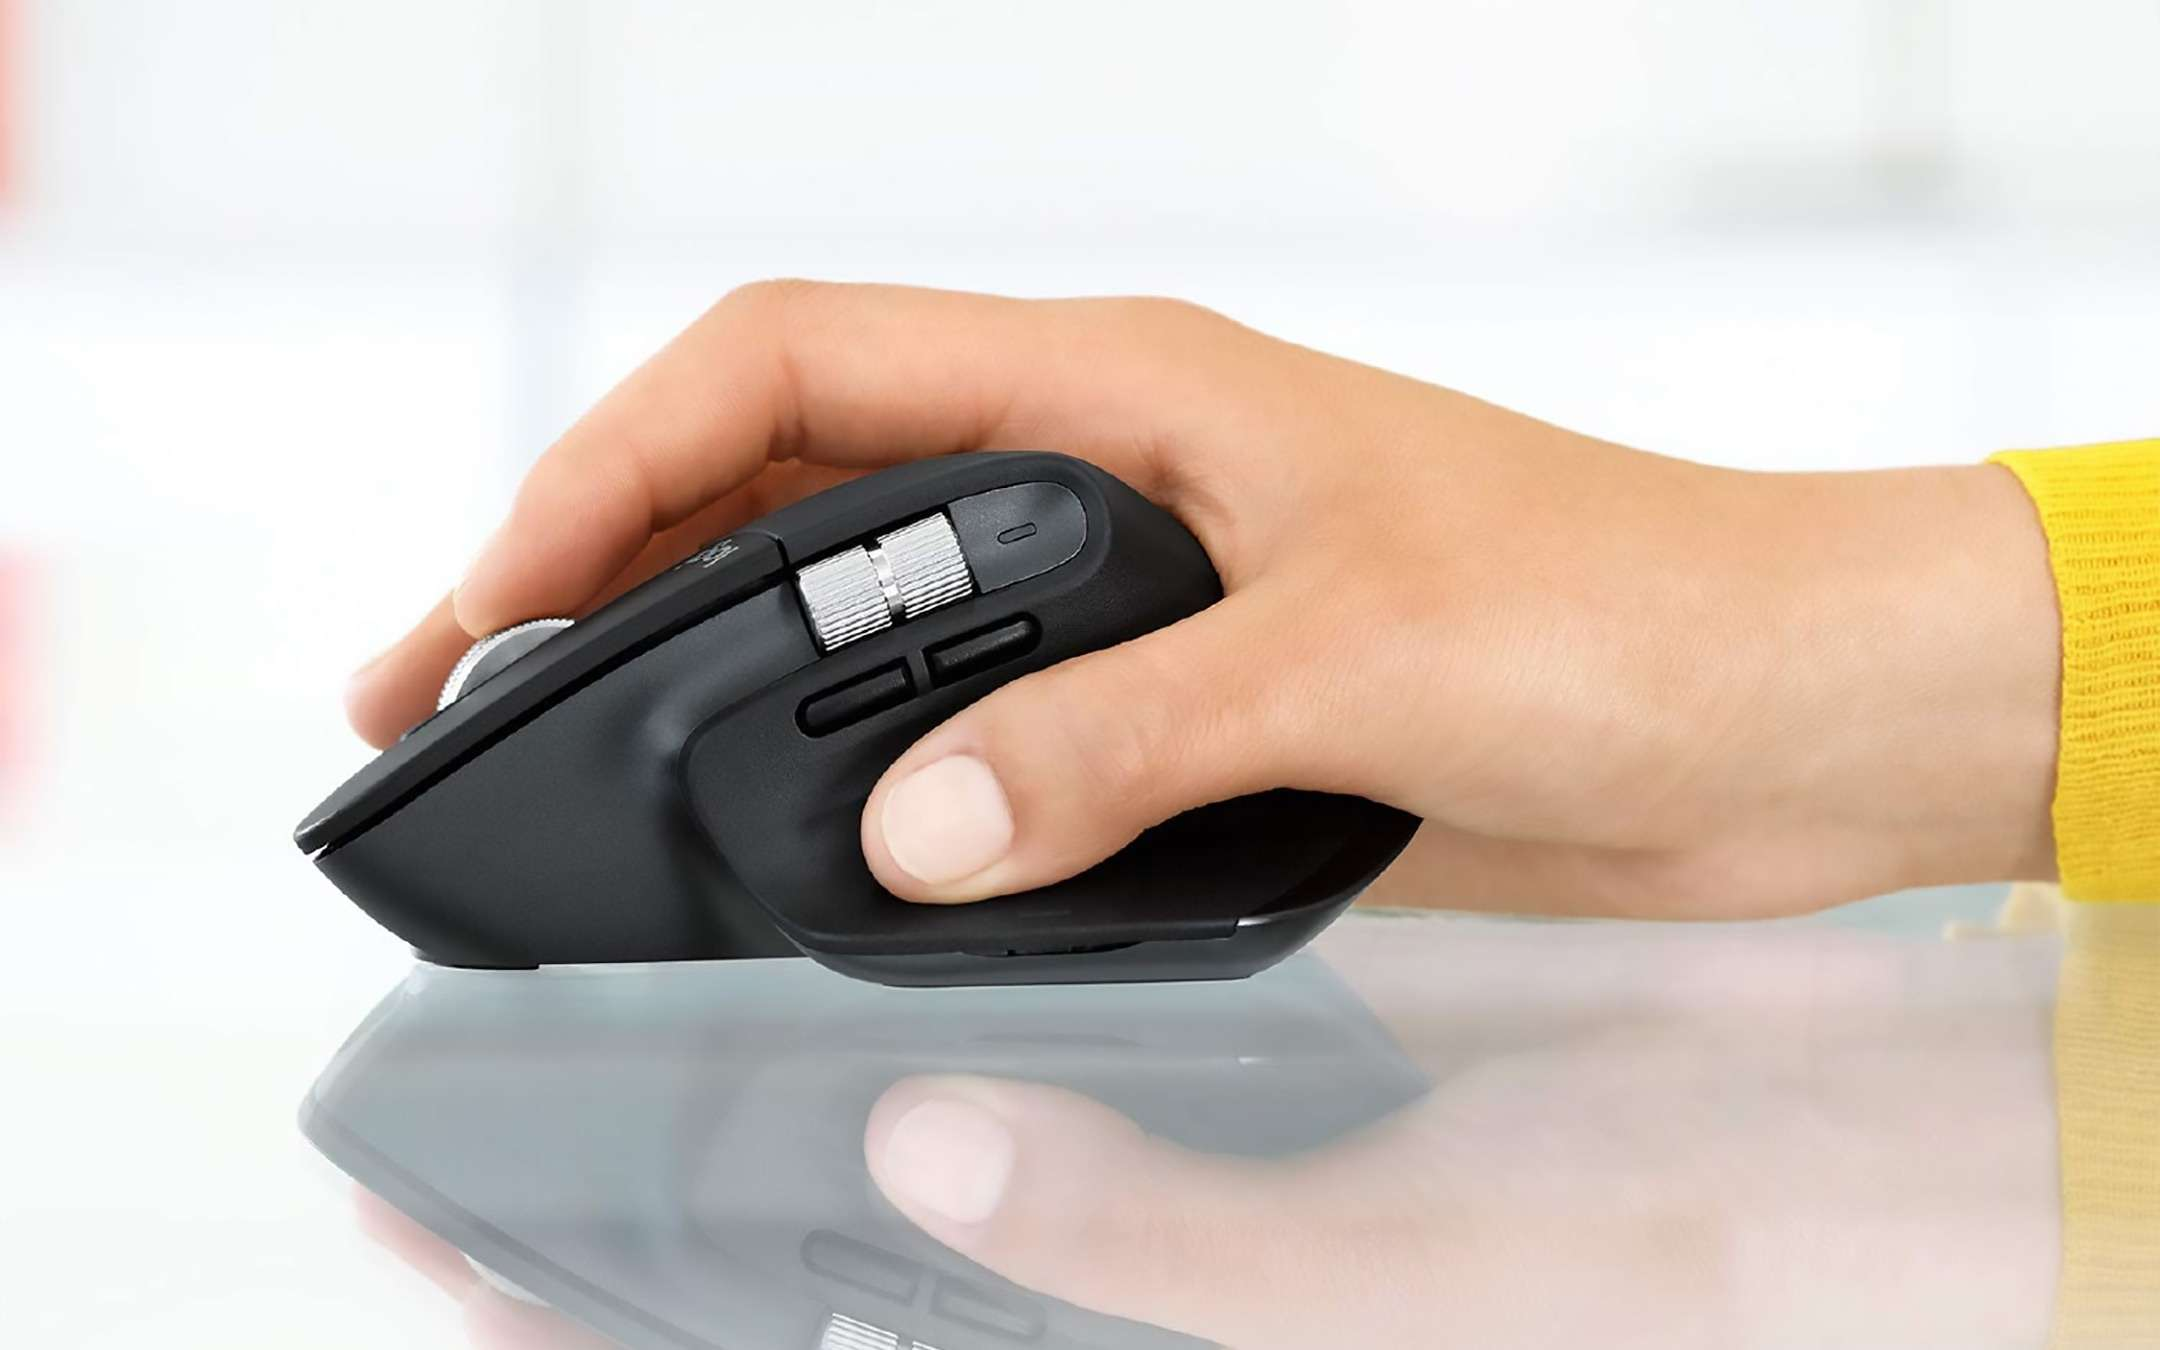 Logitech MX Master 3 on offer: not a mouse, THE MOUSE